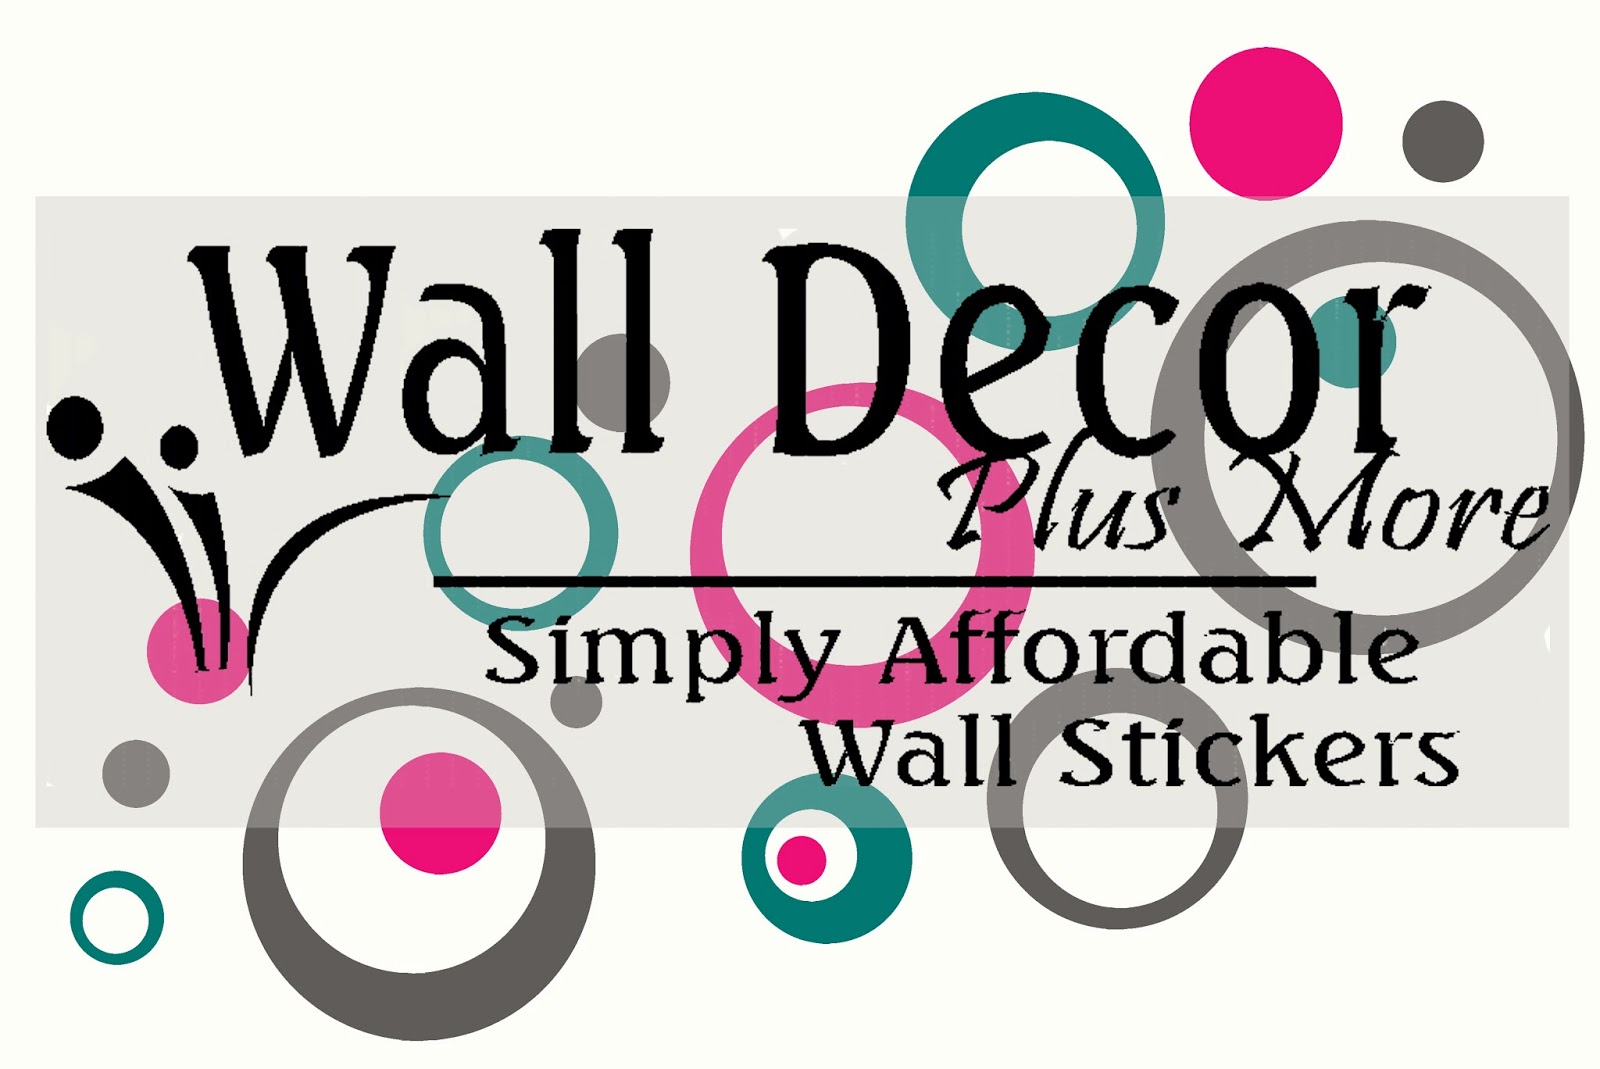 Wall Decor Plus More : Decorating with wall vinyl decor plus more featured